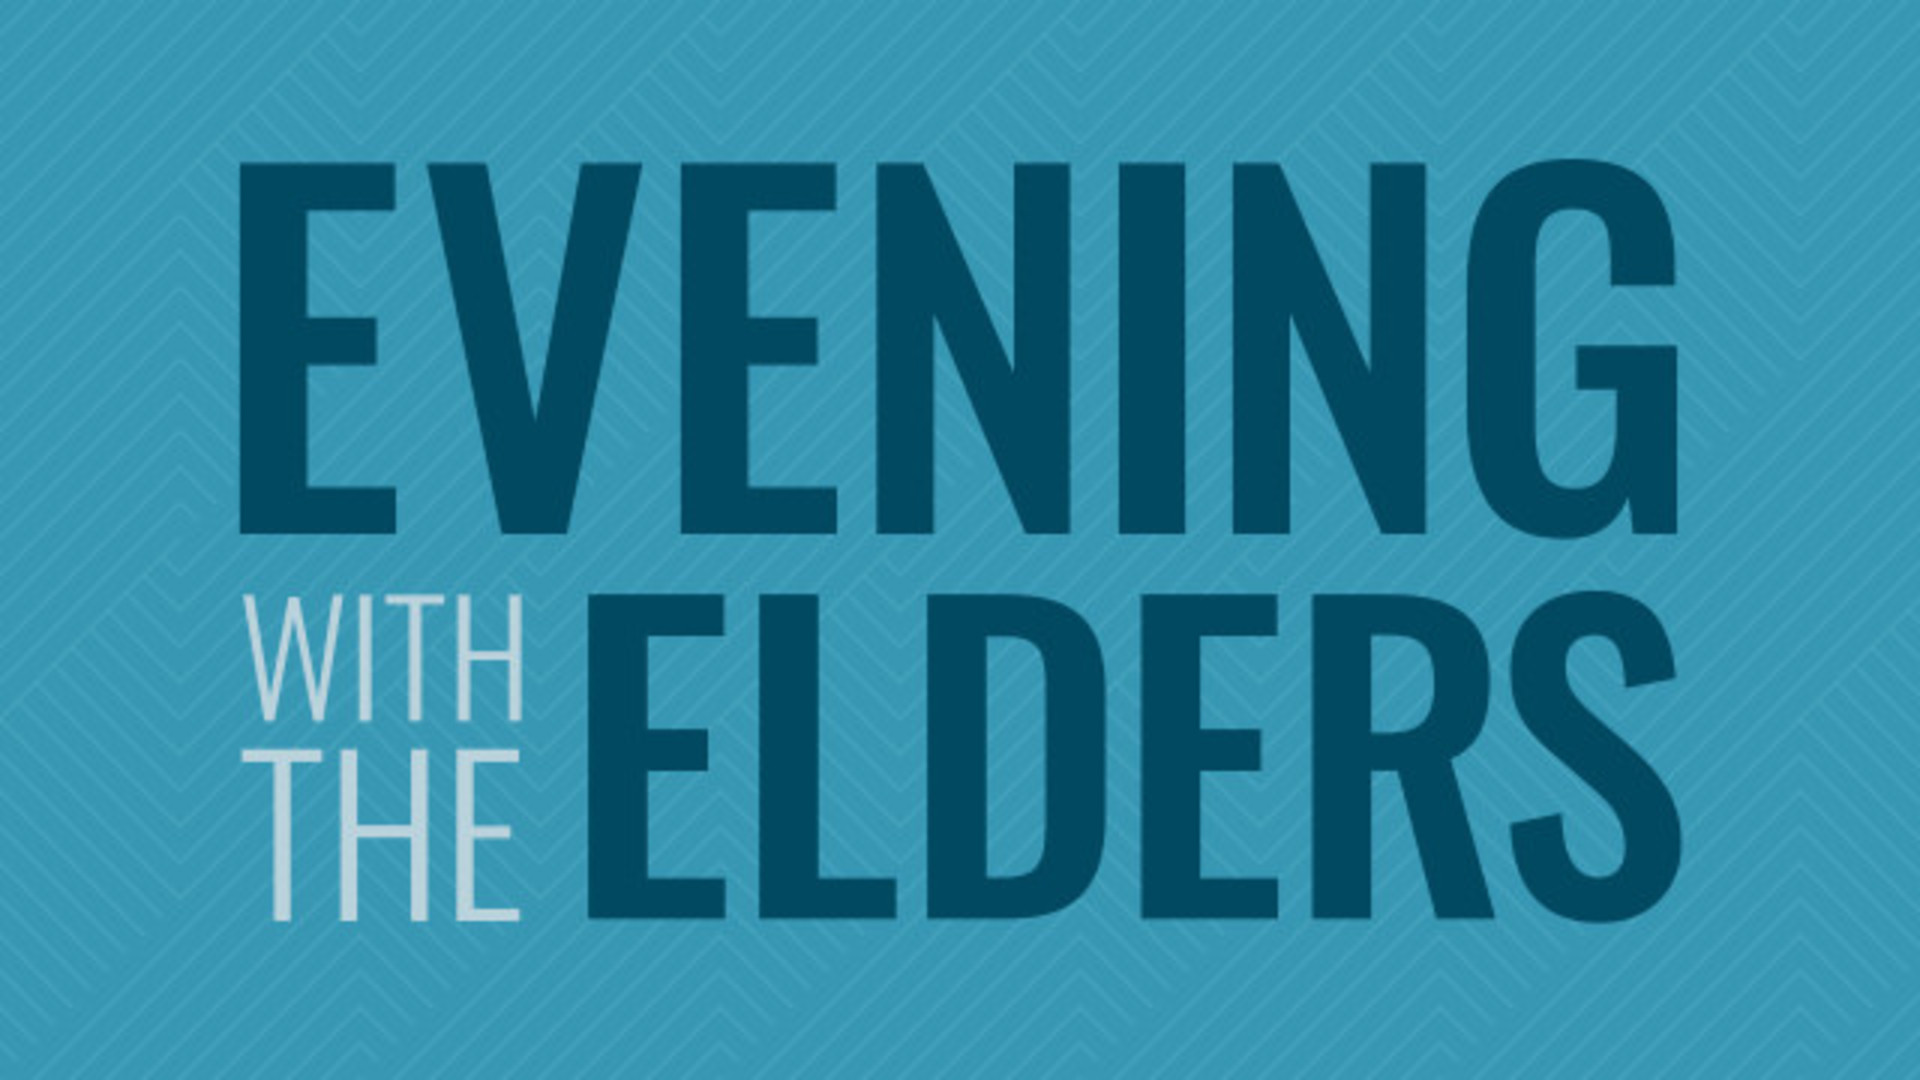 Evening with the Elders Prayer Guide Hero Image